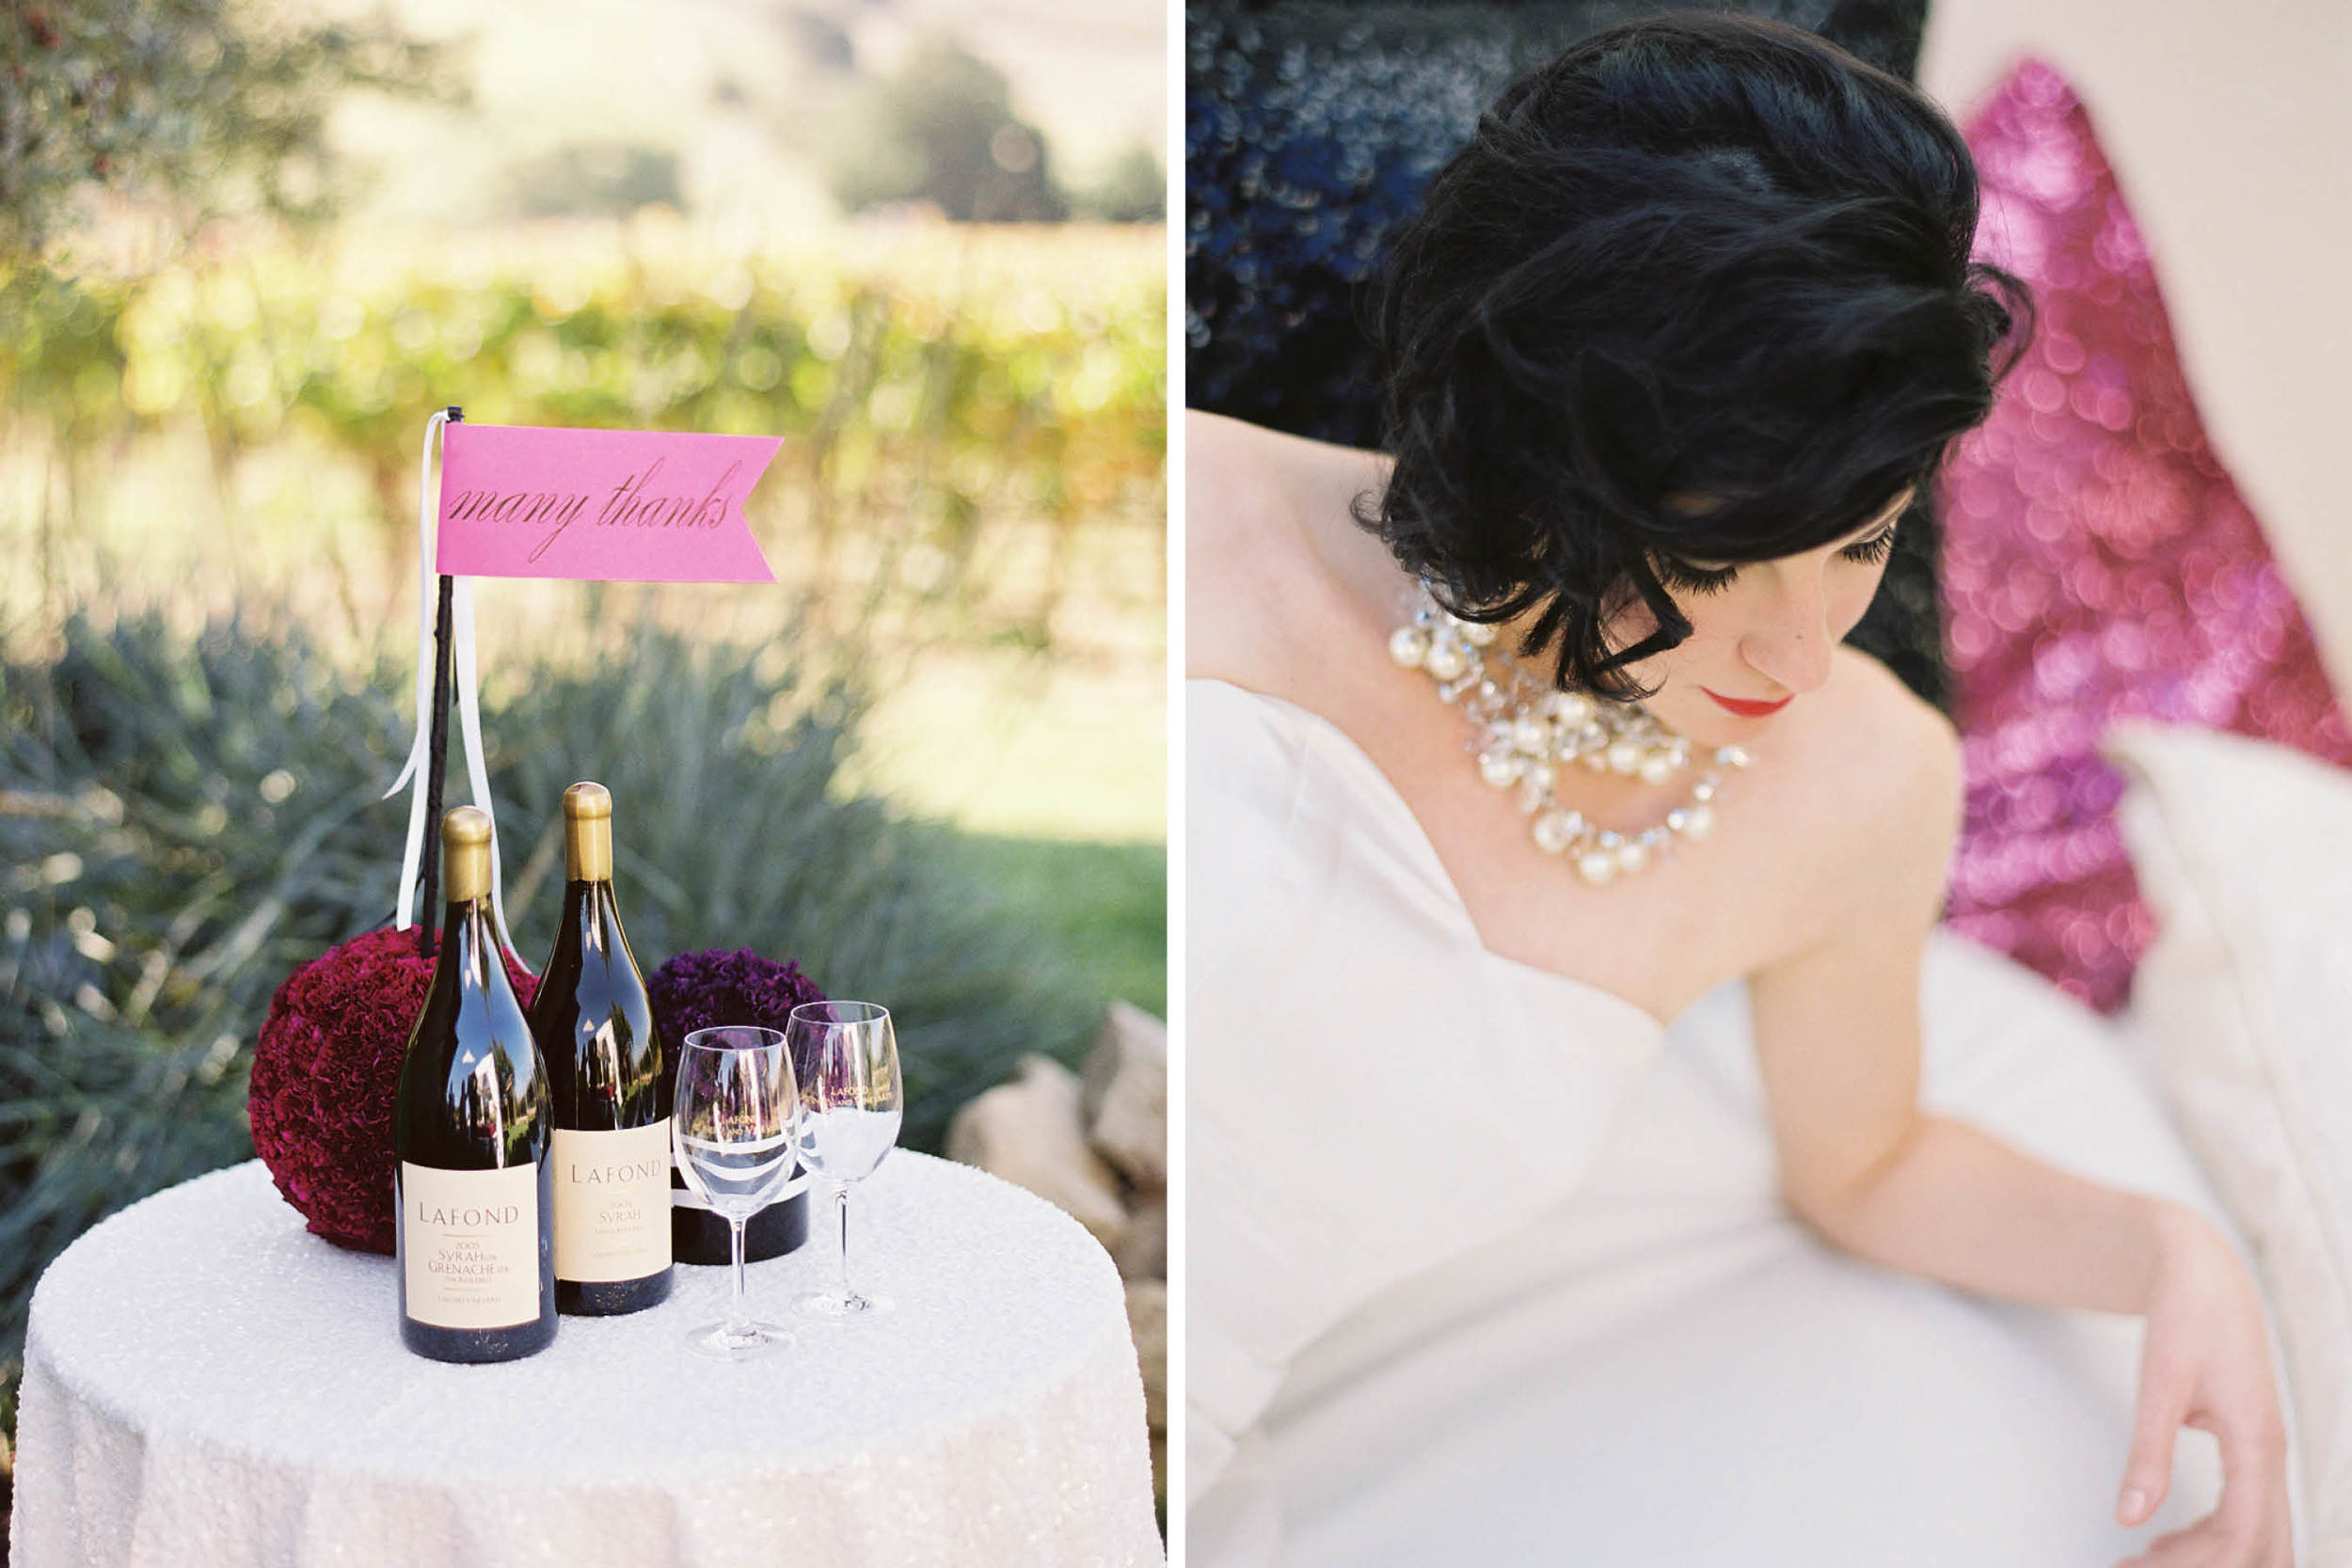 alegria-by-design-wedding-planner-coordination-santa-barbara-lafond-winery (7).jpg